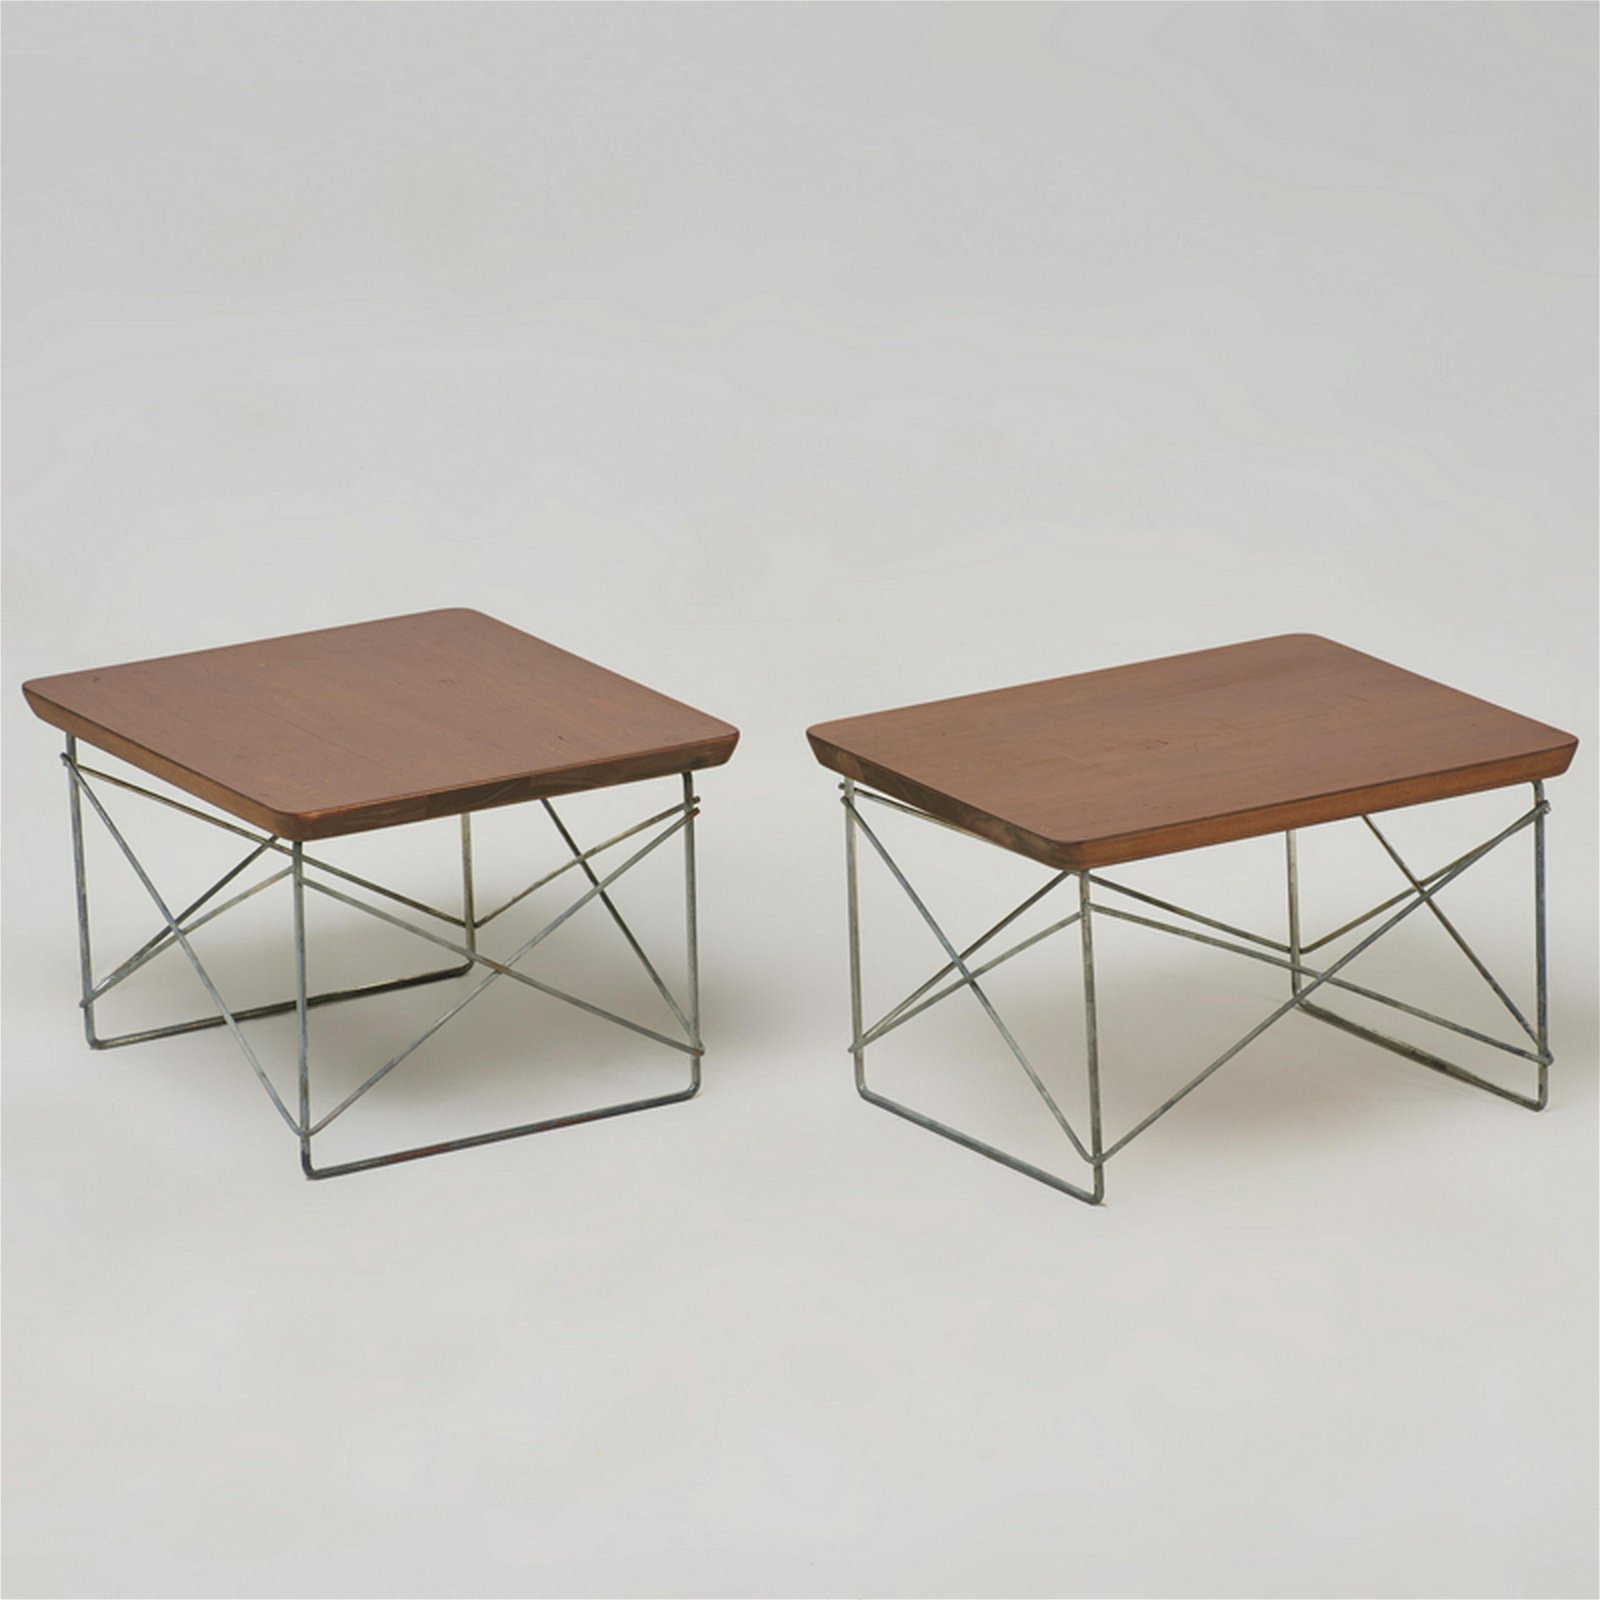 CHARLES AND RAY EAMES; HERMAN MILLER